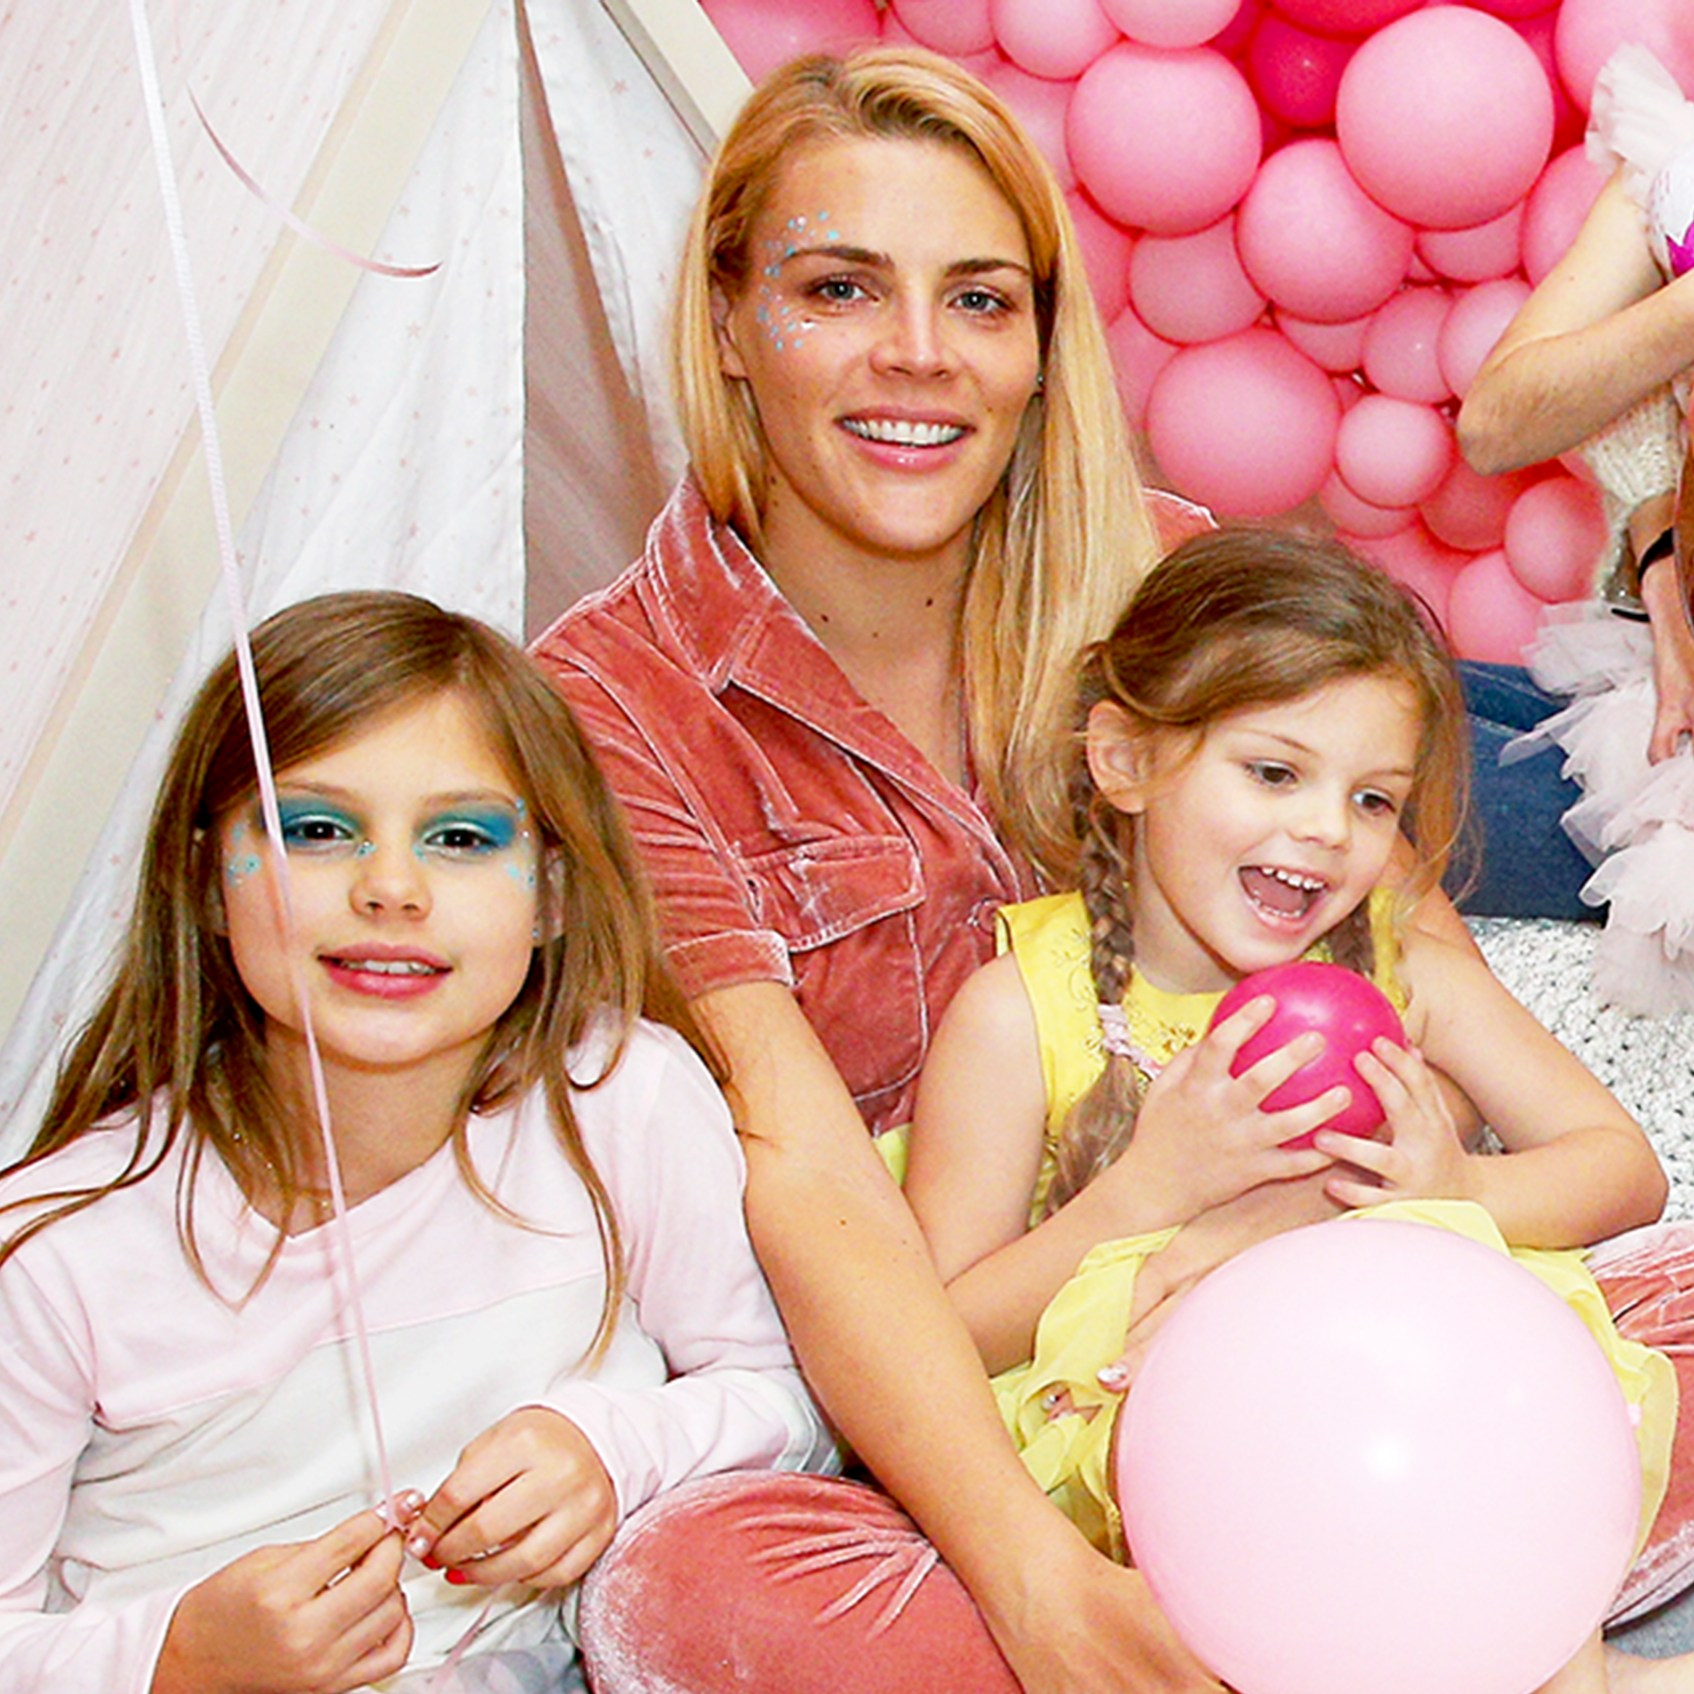 Busy Philipps with her daughters Cricket and Birdie attend L.O.L. Surprise! NYE Party Hosted by Busy Phillips & Sara Foster with daughters in Los Angeles, California.